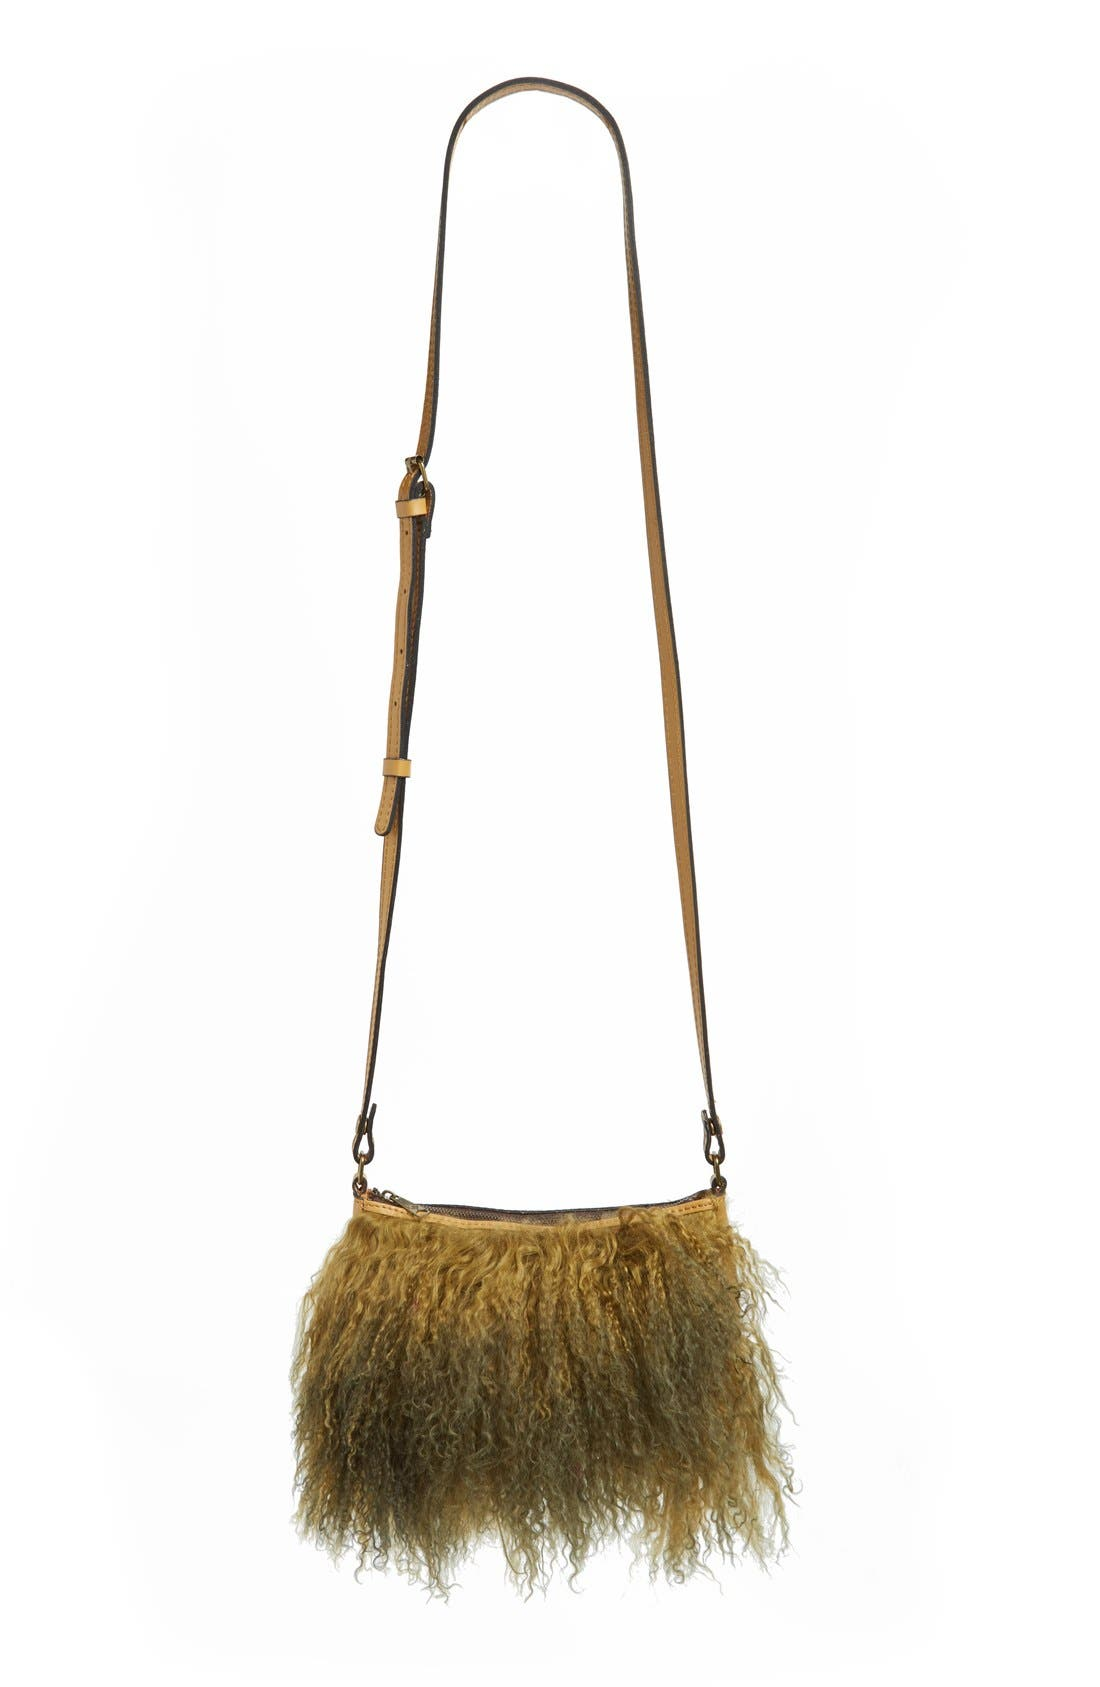 Alternate Image 1 Selected - Patricia Nash Small Paulo Genuine Shearling Crossbody Bag